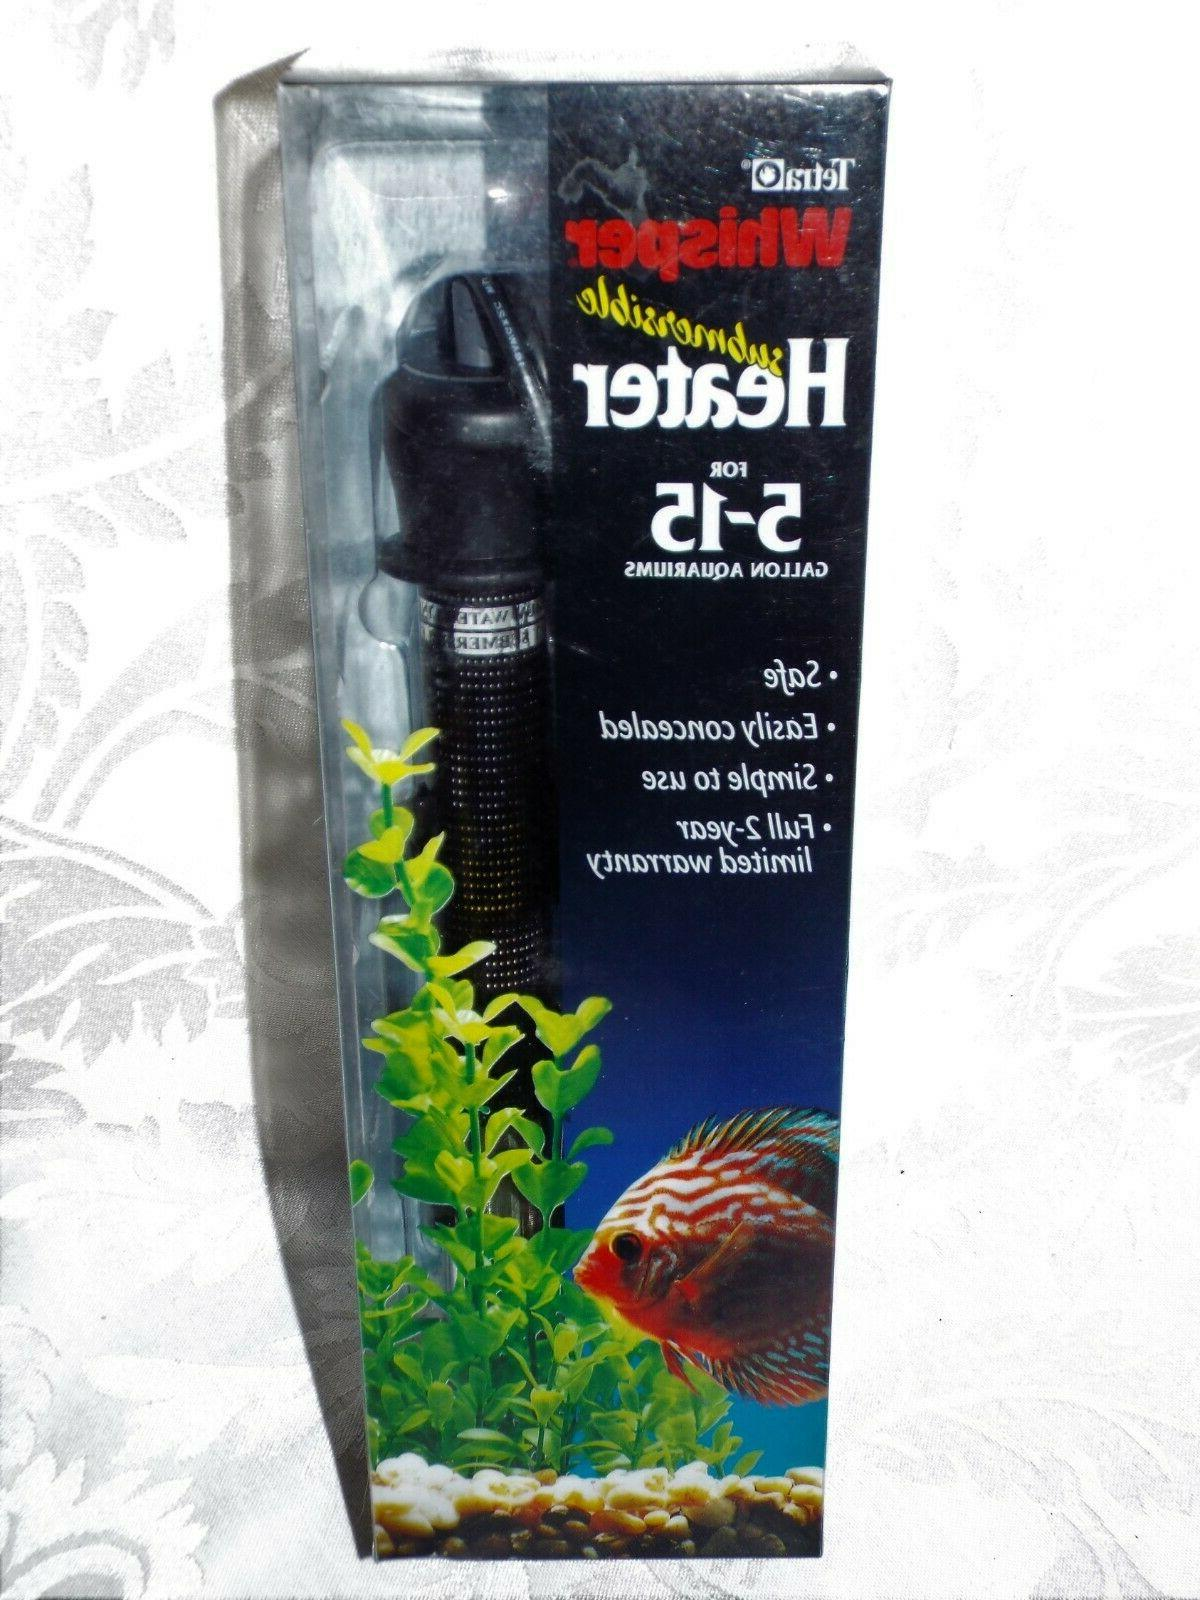 TETRA WHISPER SUBMERSIBLE HEATER, NIB aquariums Easily concealed